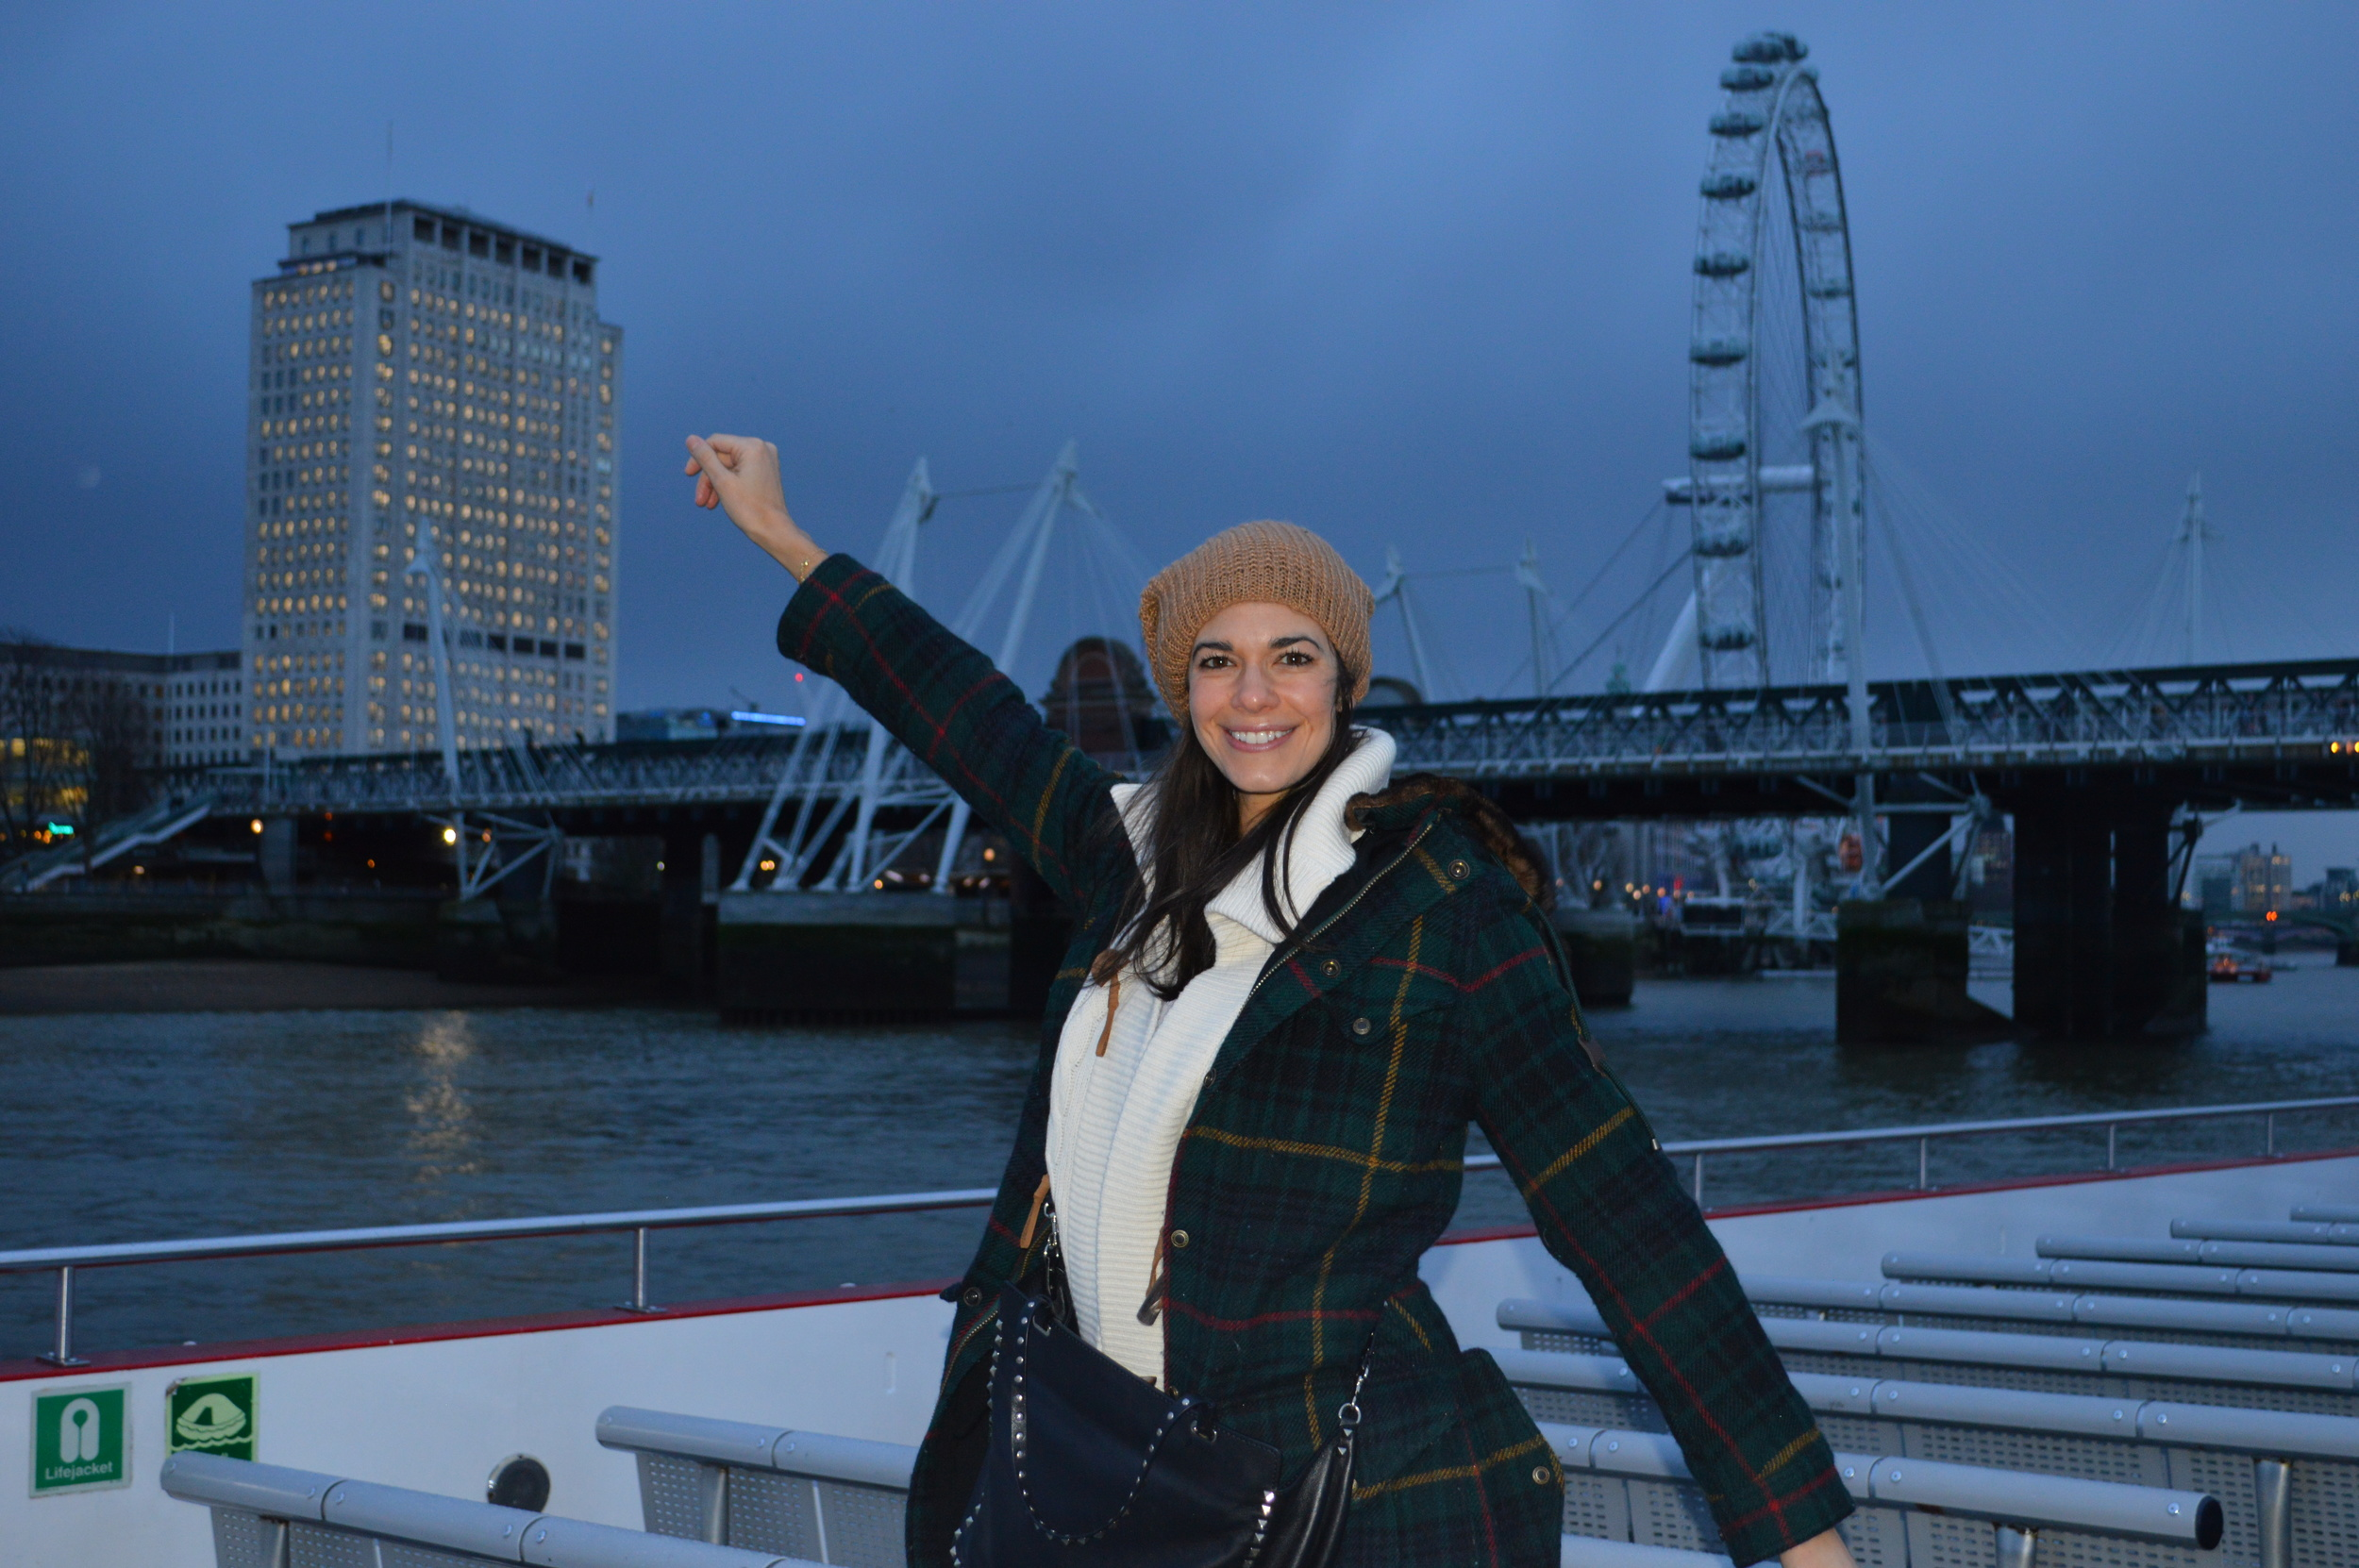 The London Eye - Lauren Schwaiger